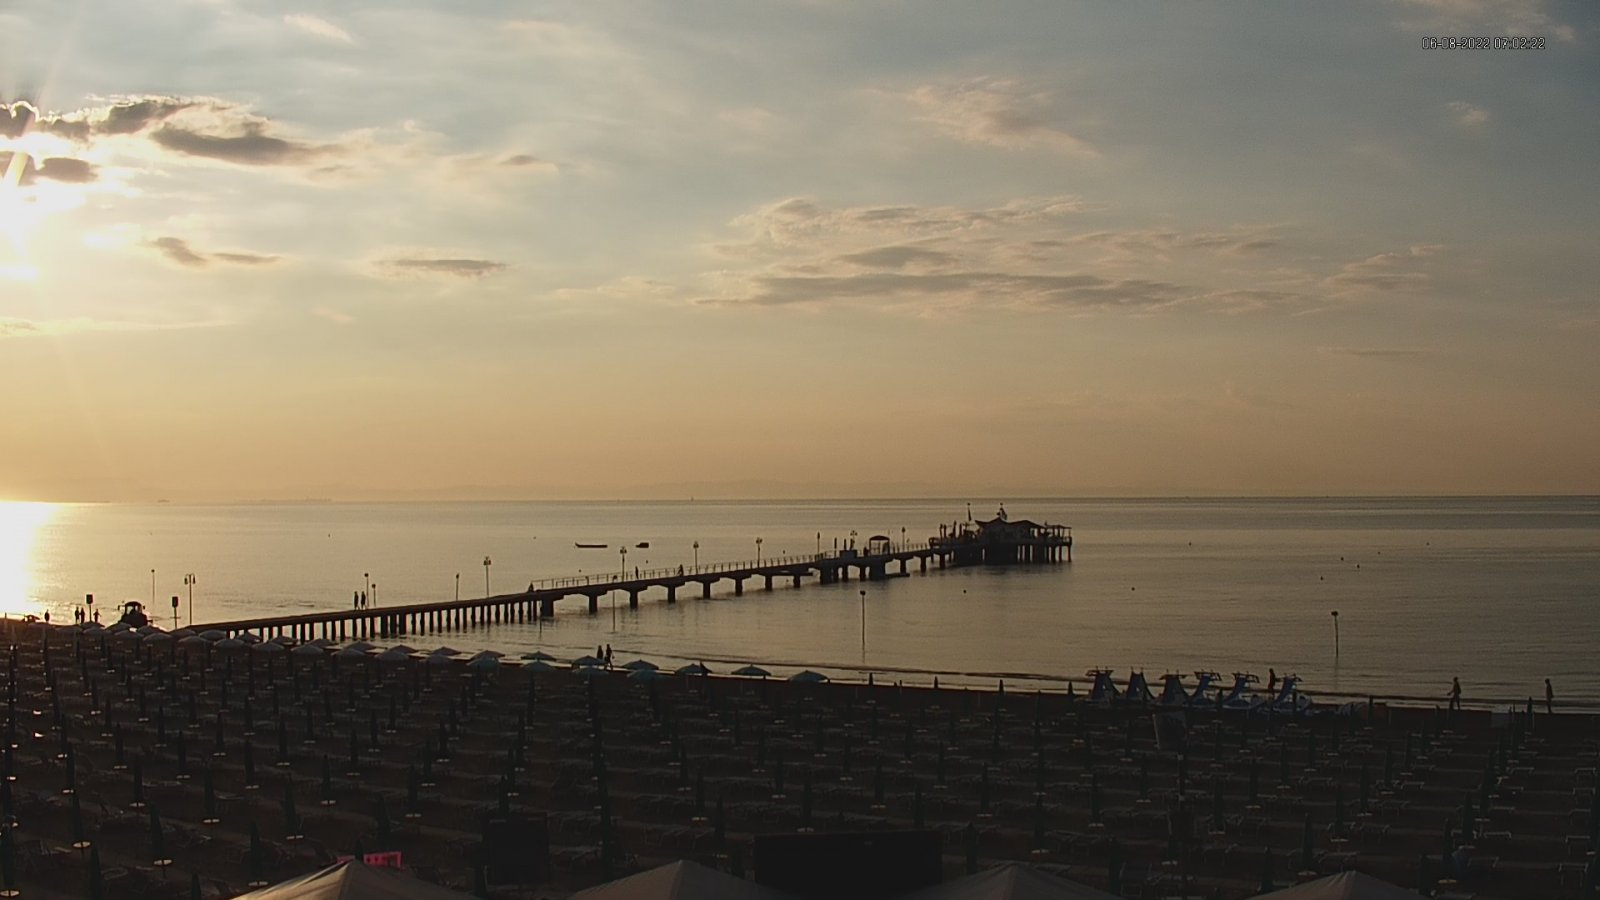 Webcam Mare Lignano Sabbiadoro - Webcam Meteo » ILMETEO.it